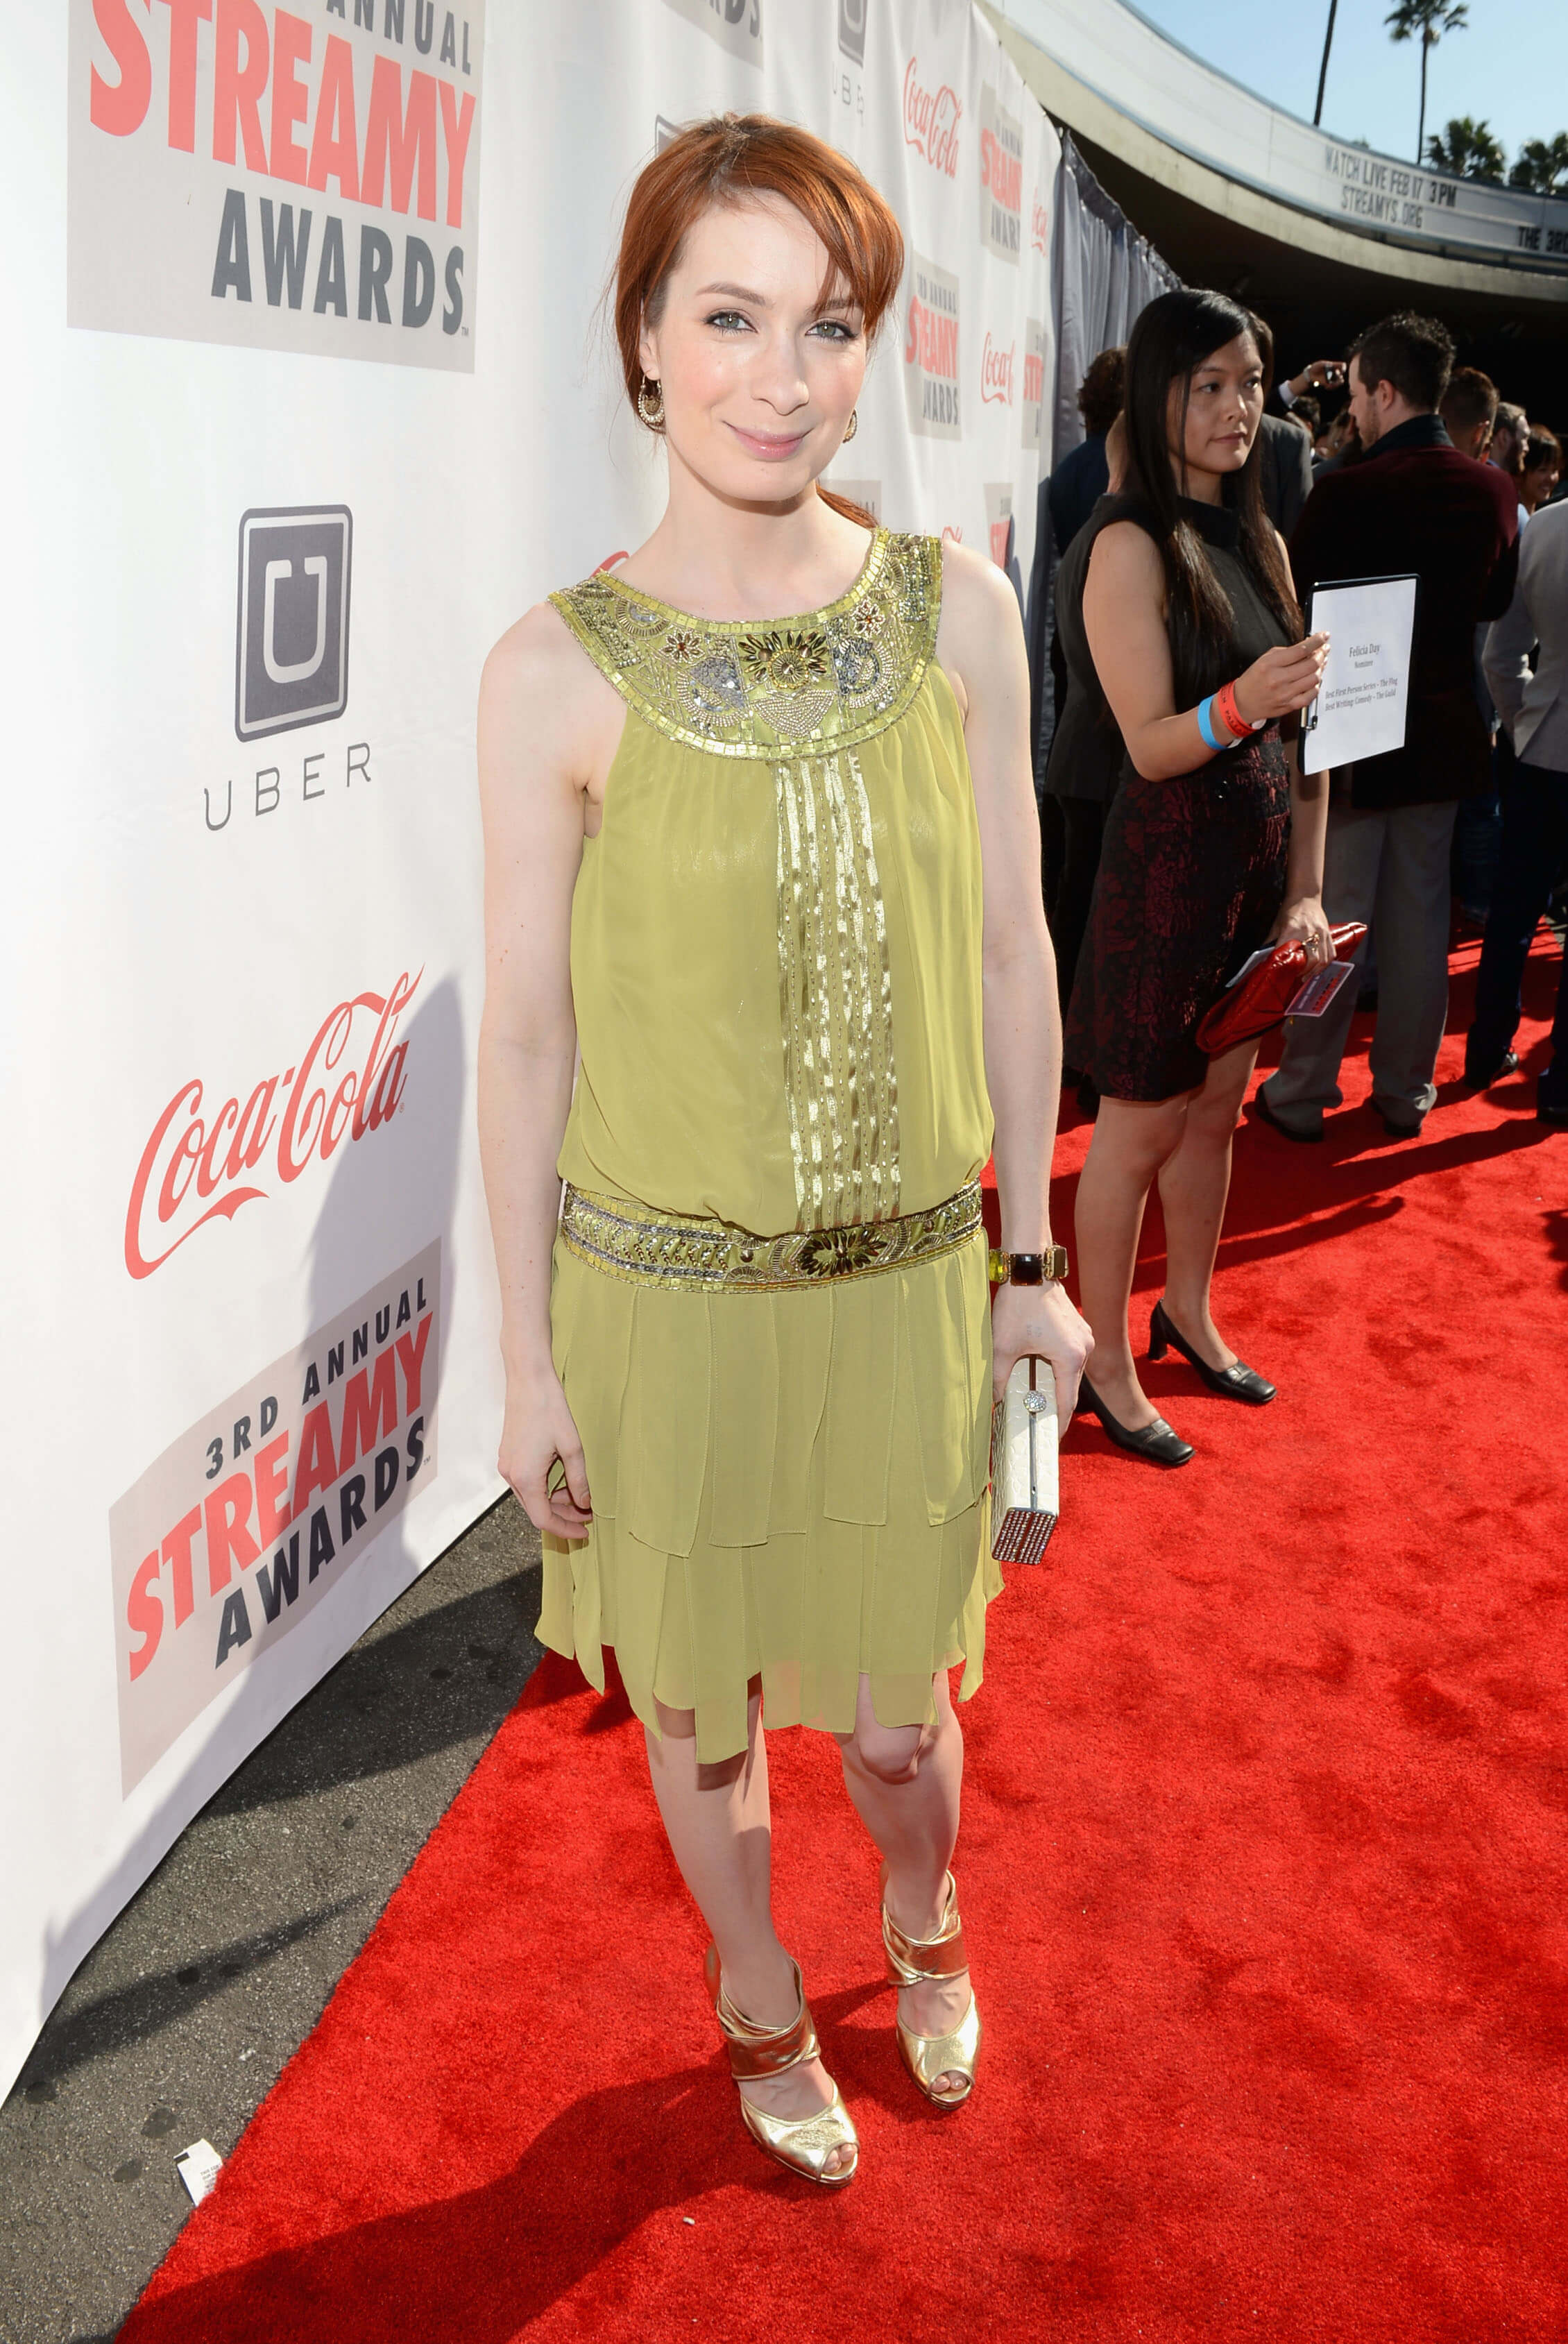 Felicia Day hot pictures]